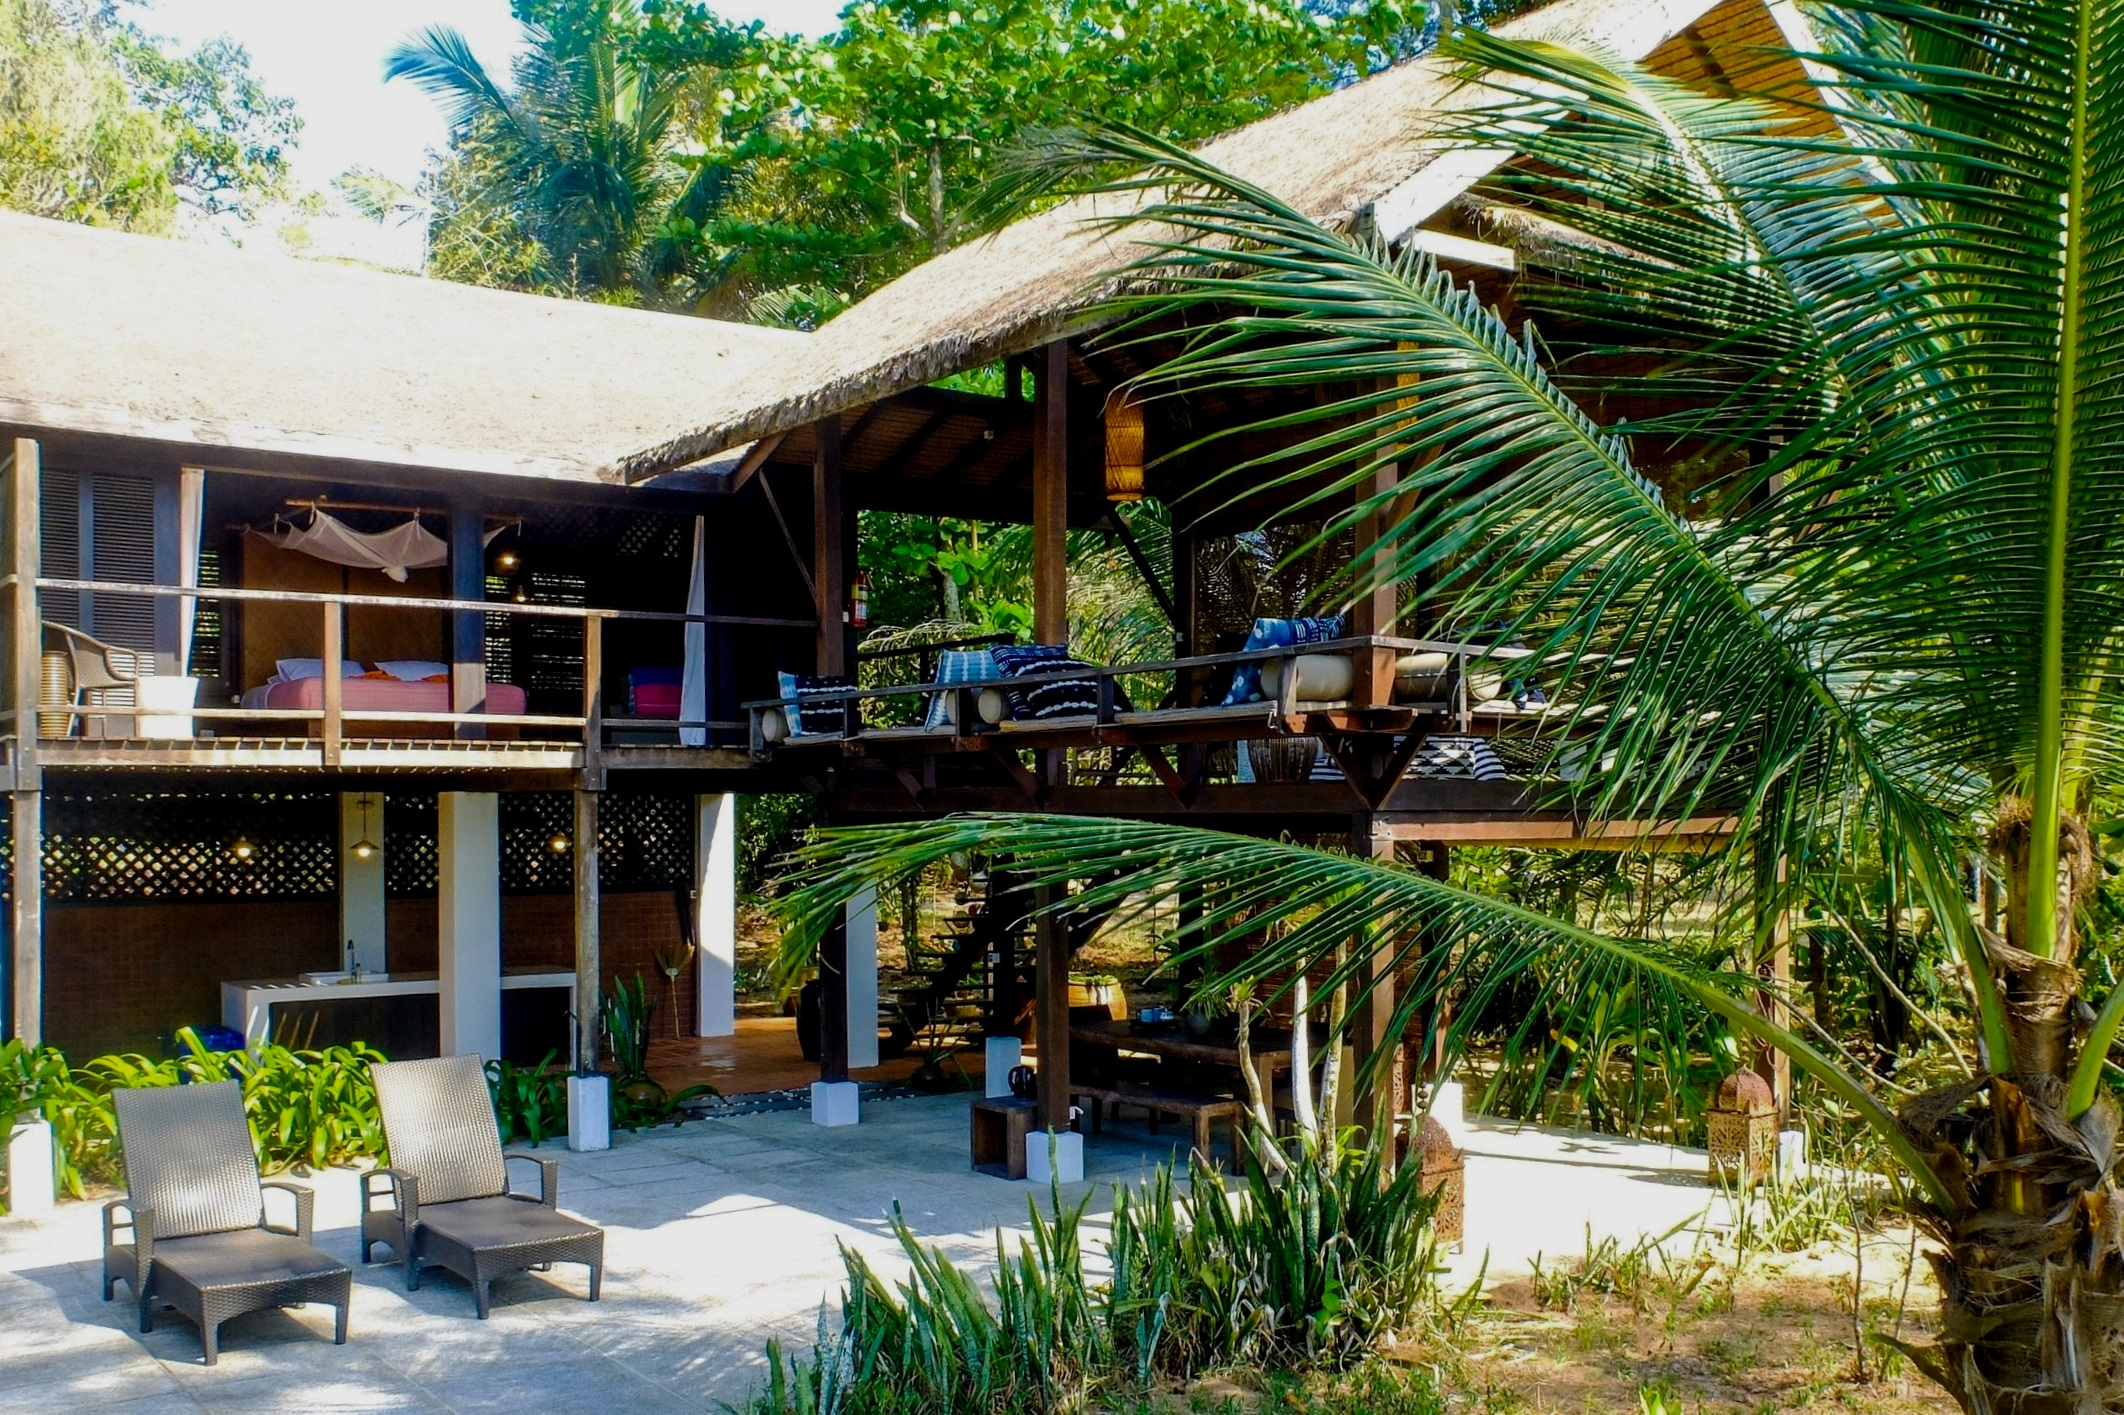 baan tamarind - sleeps 2 people, 2 mns to clubhouse